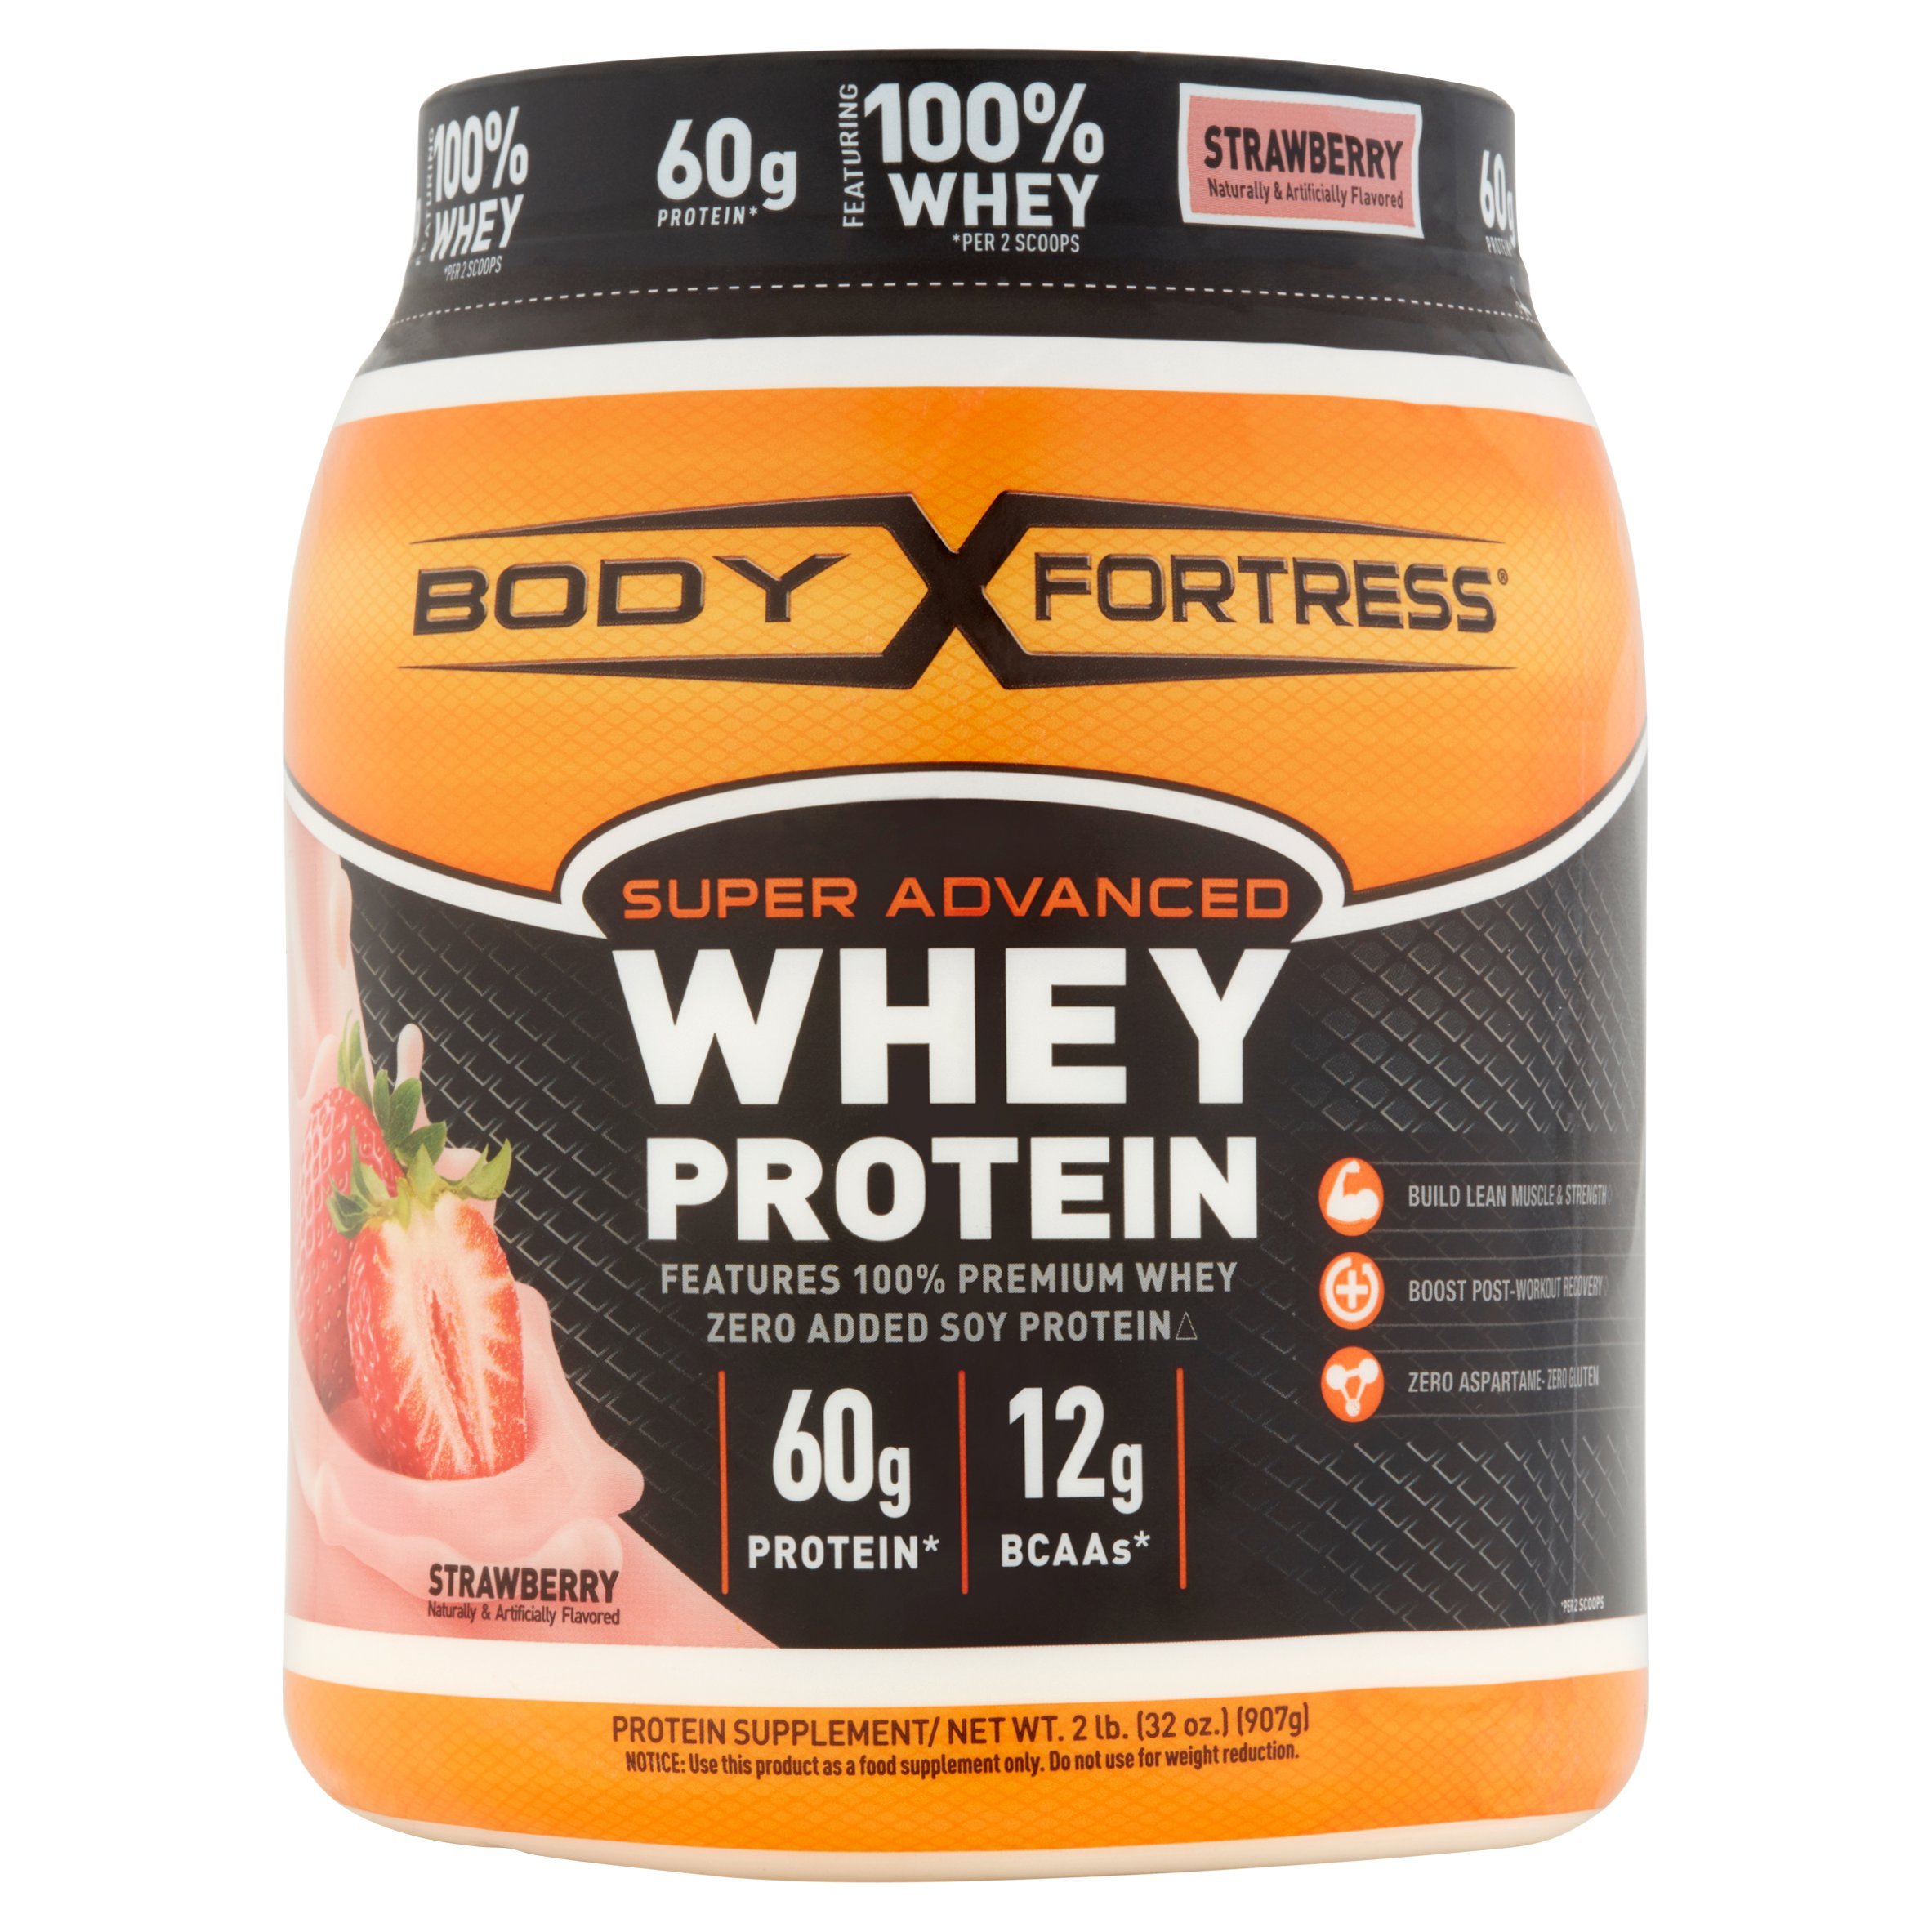 Body Fortress Super Advanced Whey Protein Powder, Strawberry, 60g Protein, 2 Lb